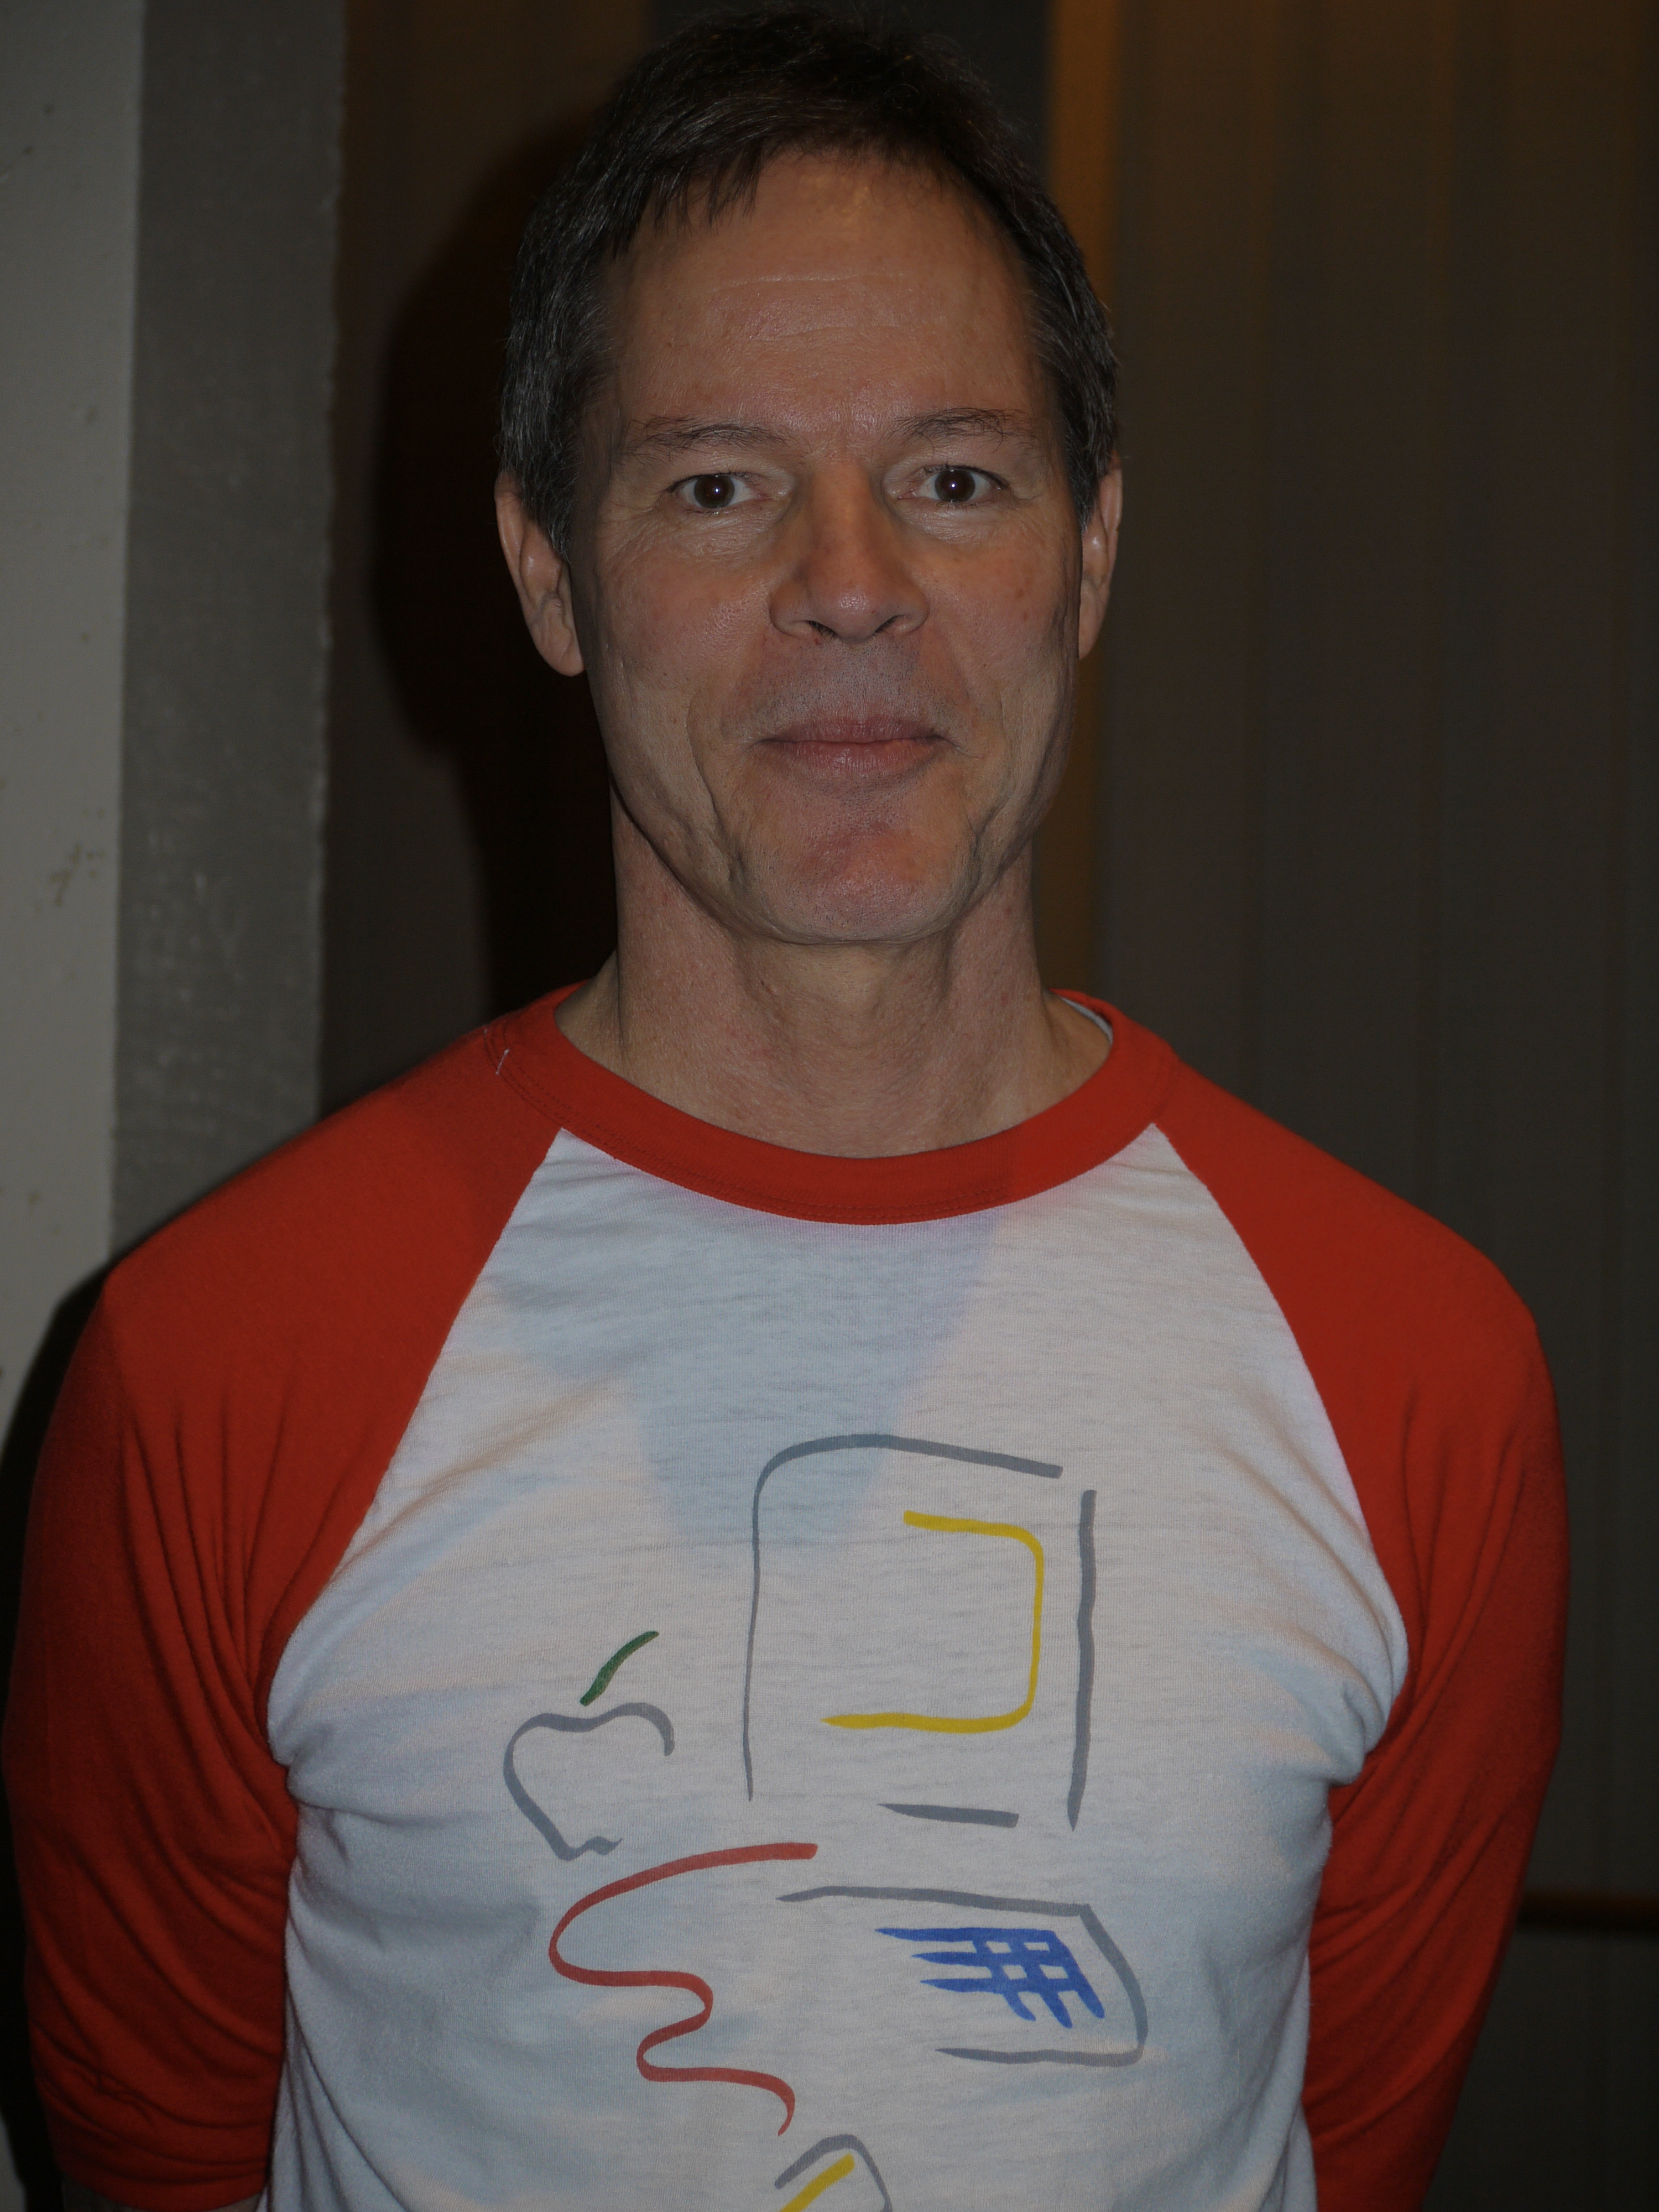 Classic Macintosh T-Shirt modeled by Larry Kenyon